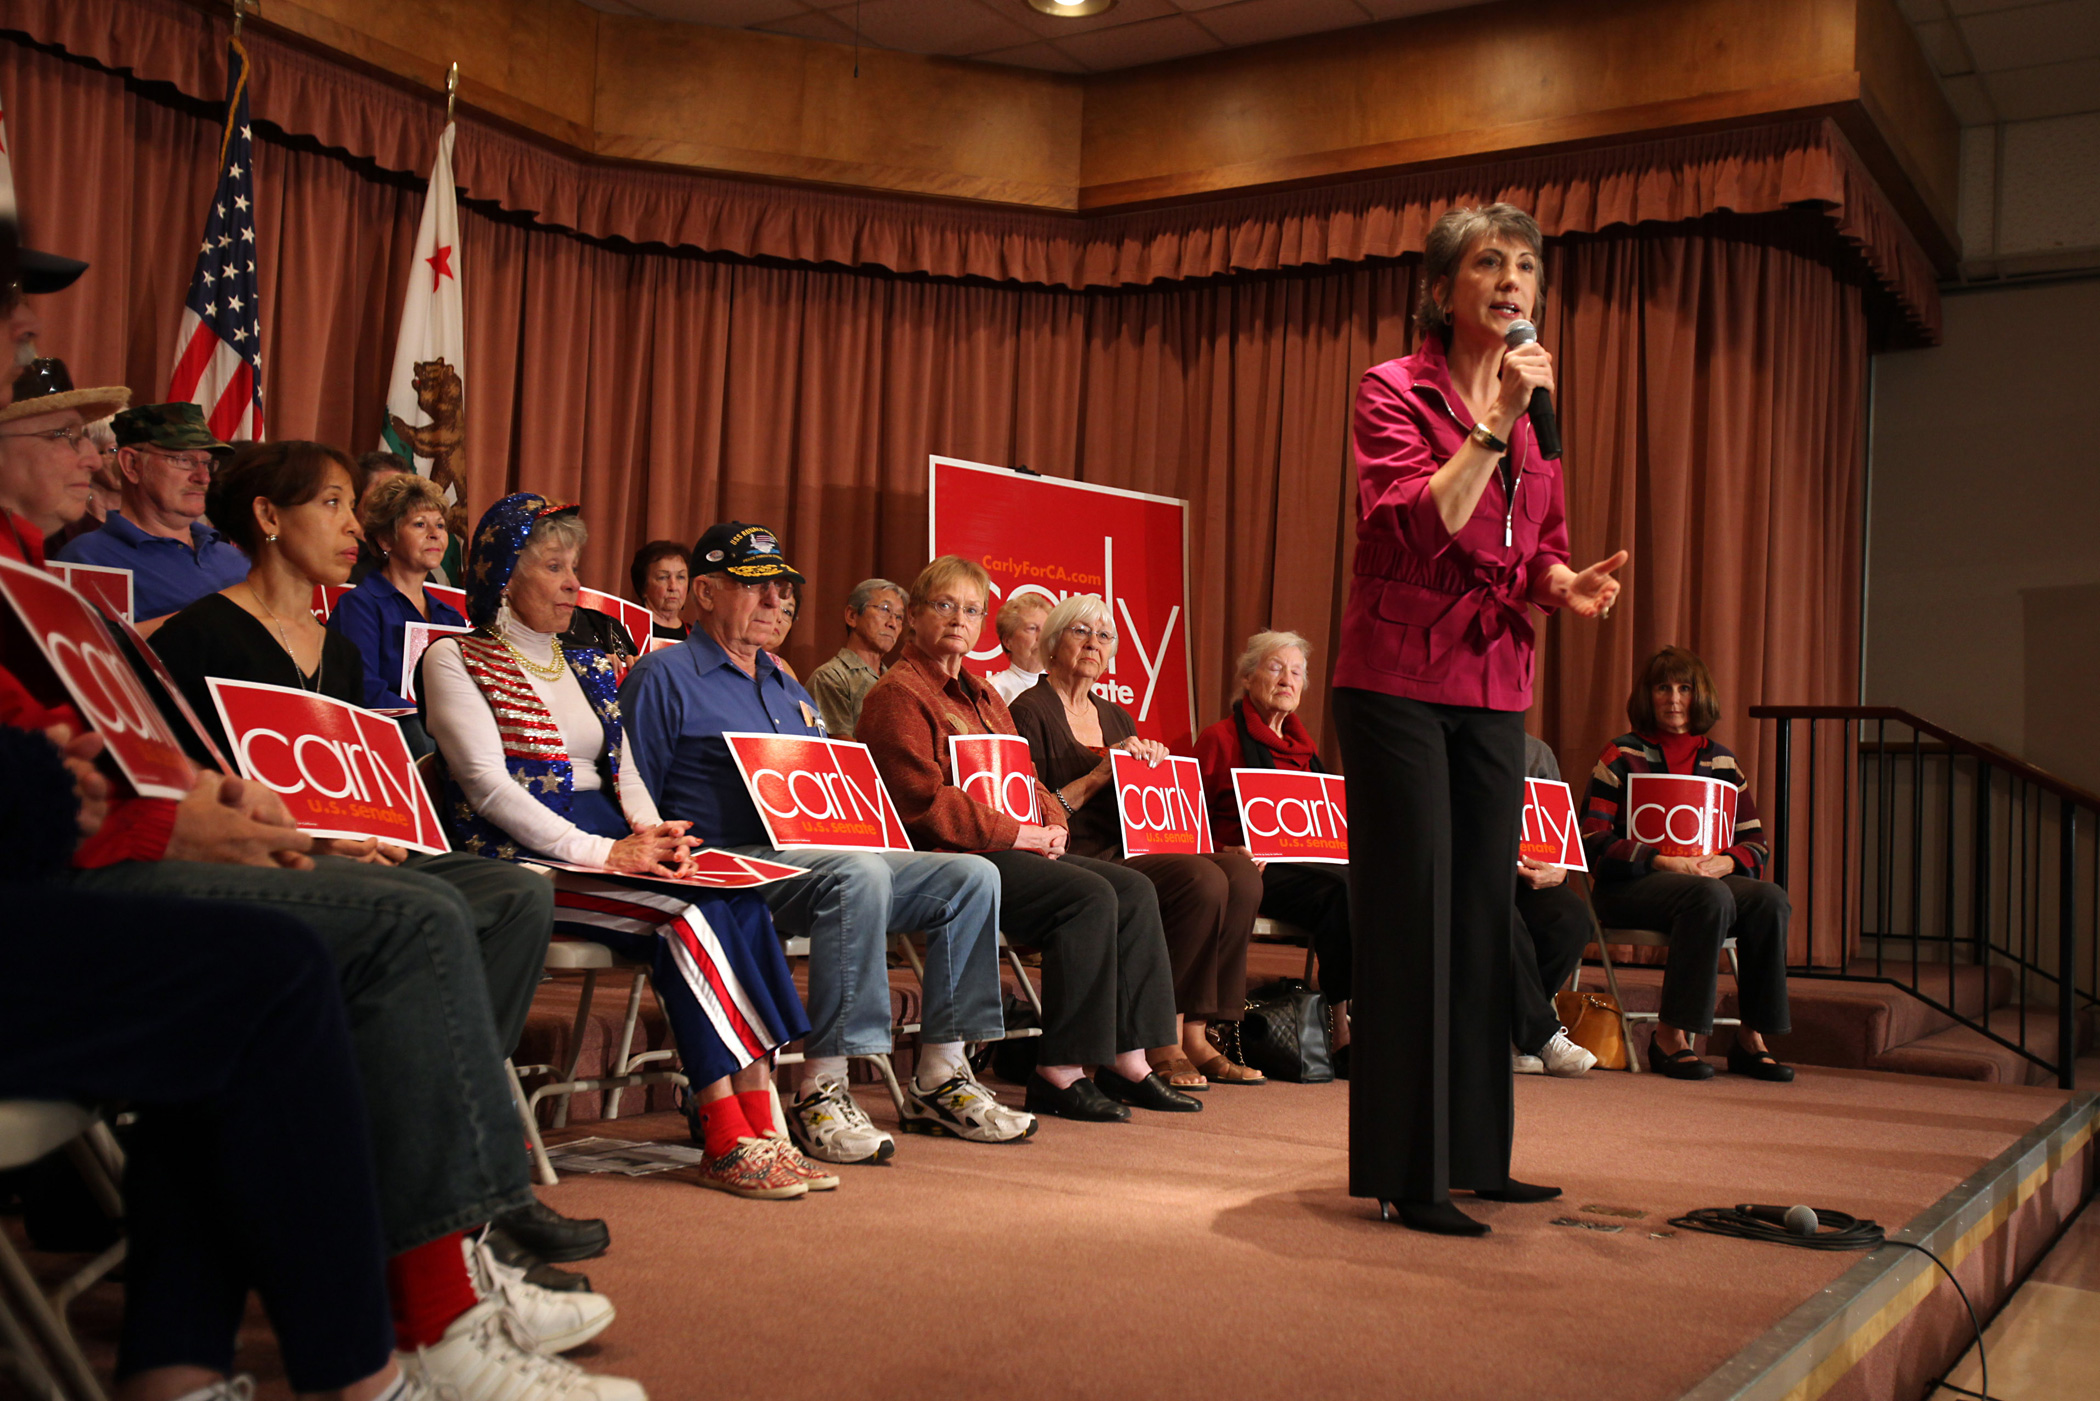 Carly Fiorina speaks to senior citizens at Leisure World on Oct. 30, 2010 in Seal Beach, Calif.